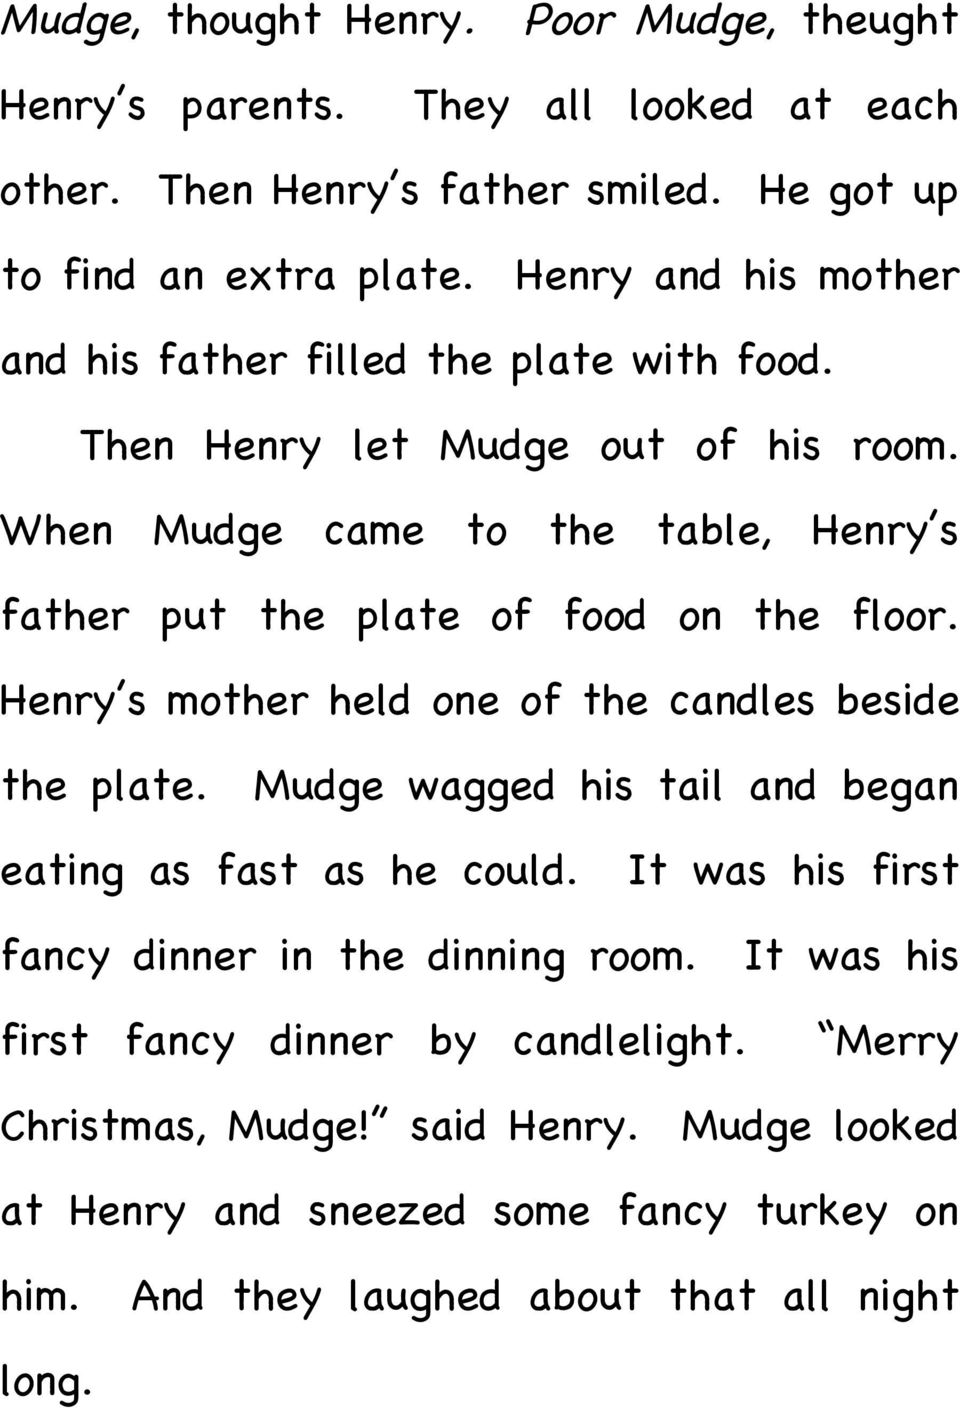 When Mudge came to the table, Henry s father put the plate of food on the floor. Henry s mother held one of the candles beside the plate.